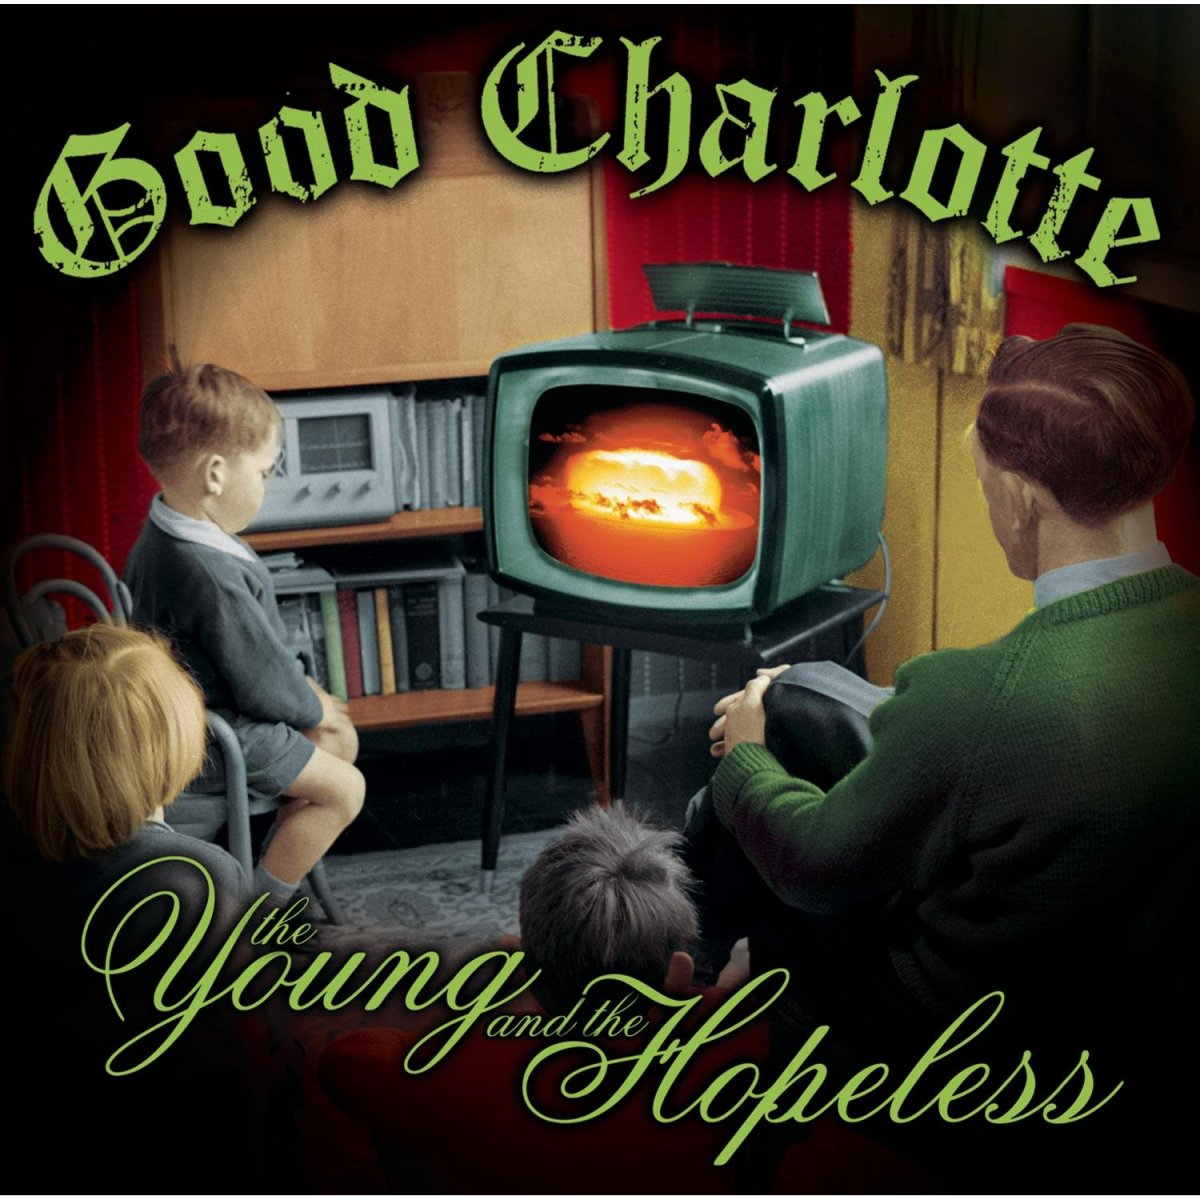 a-review-of-the-album-the-young-and-the-hopeless-by-good-charlotte